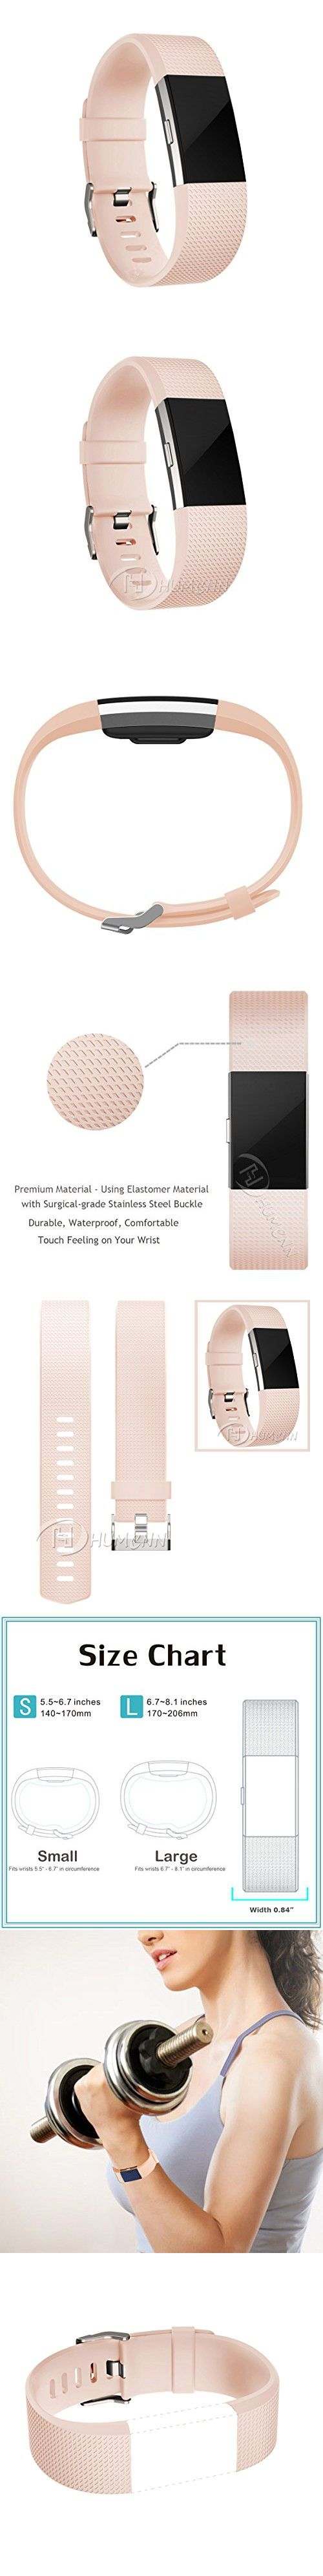 Accessory Band for Fitbit Charge 2 HR, Classic Series for Women, Blush Pink, Small